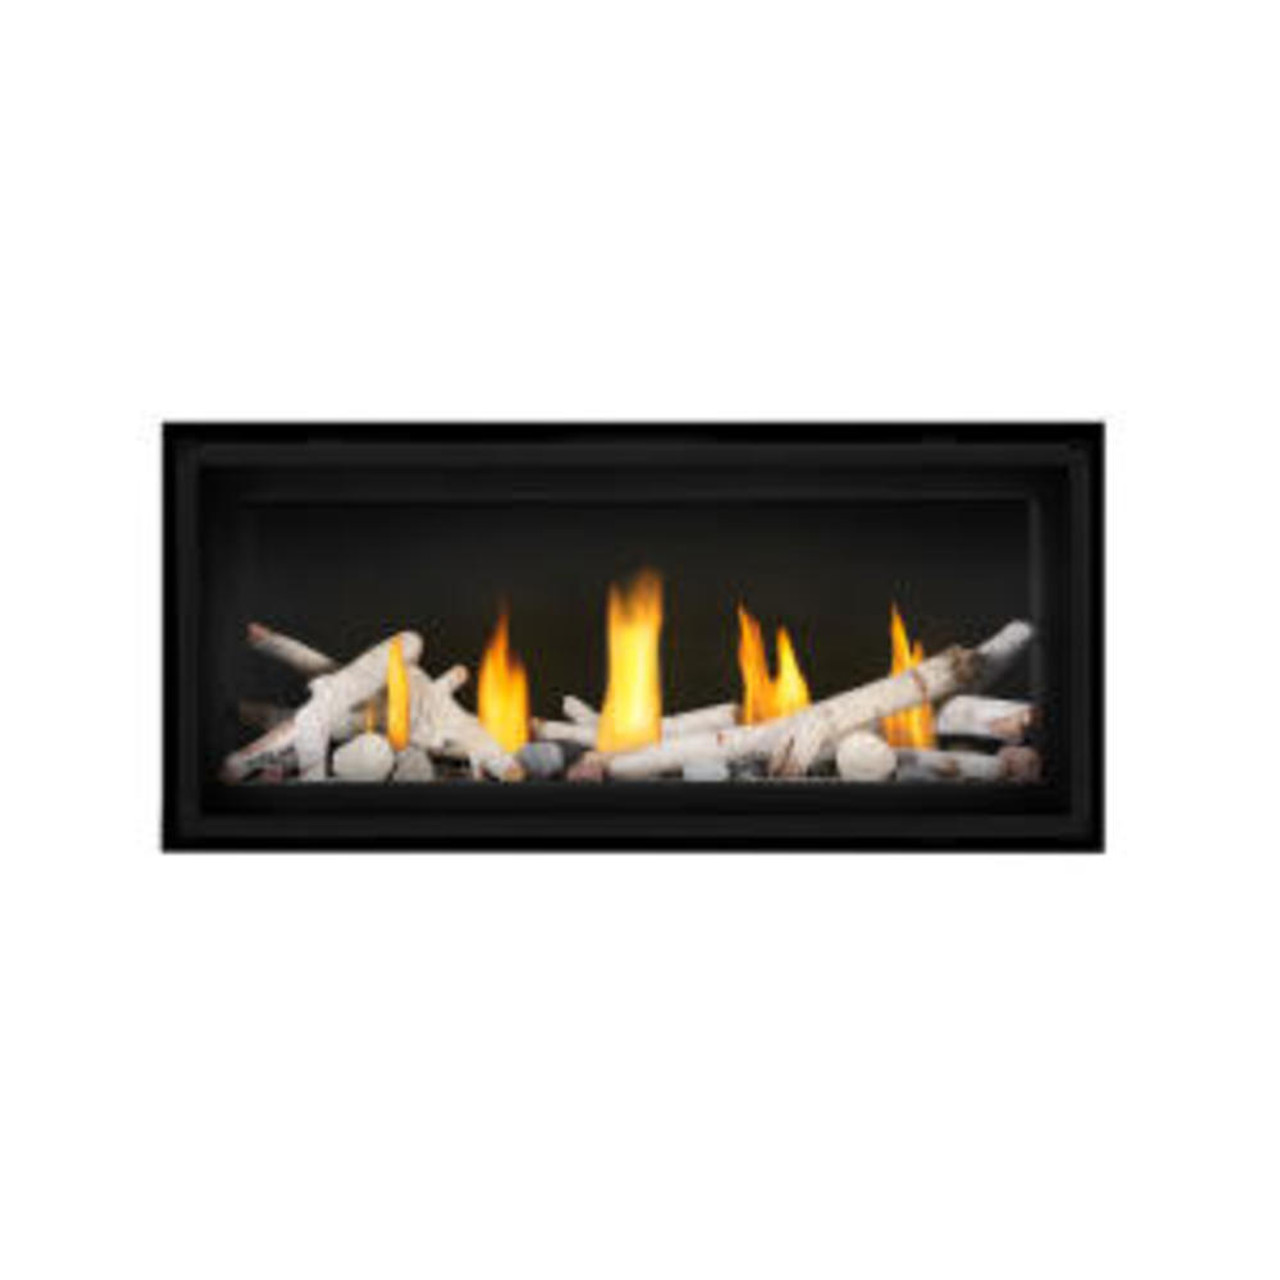 Napoleon Luxuria™ 50 Single-Sided Direct Vent Gas Fireplace - LVX50NX